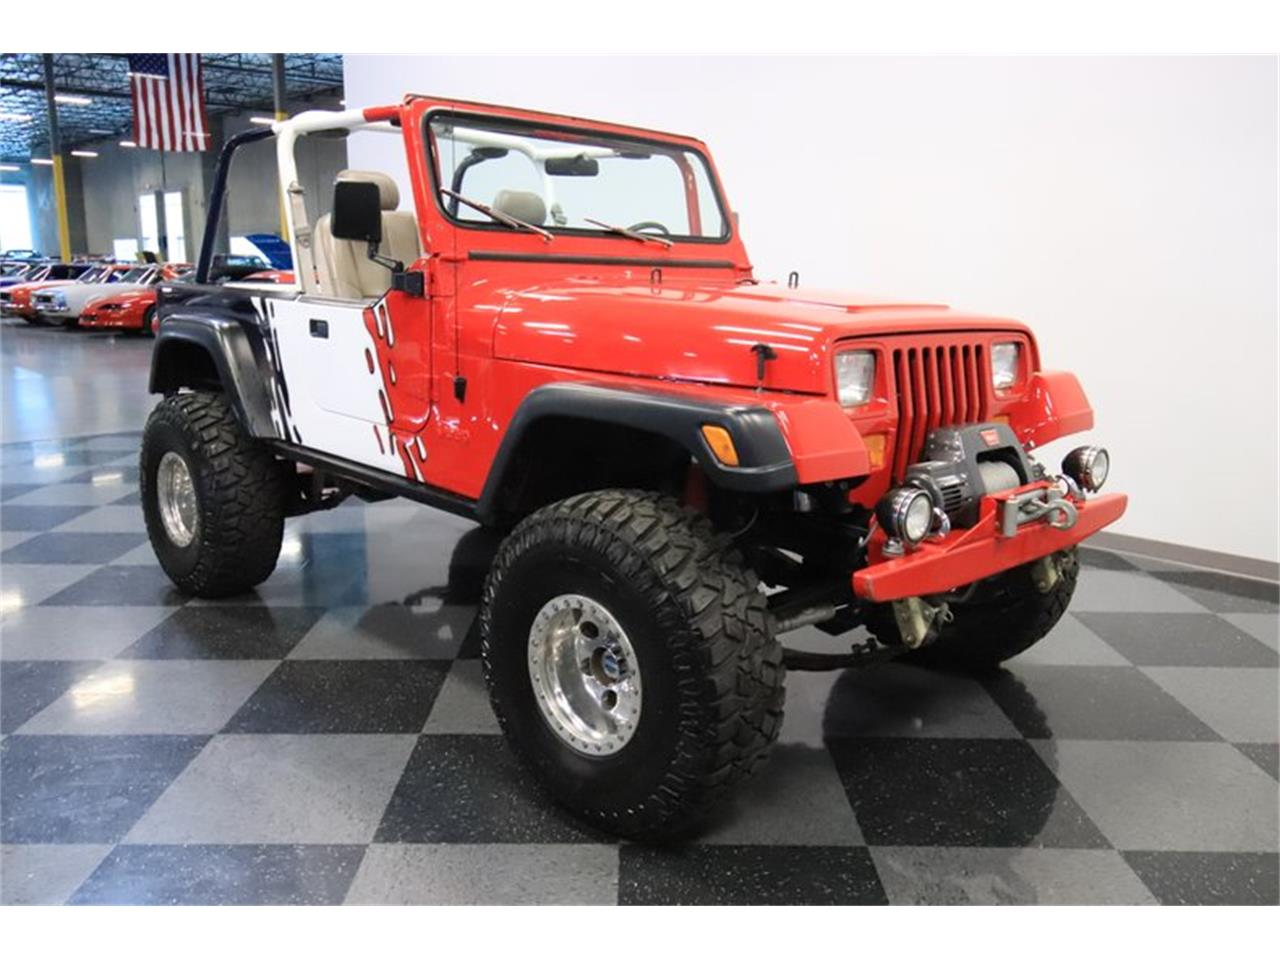 1983 Jeep CJ8 Scrambler for sale in Mesa, AZ – photo 16